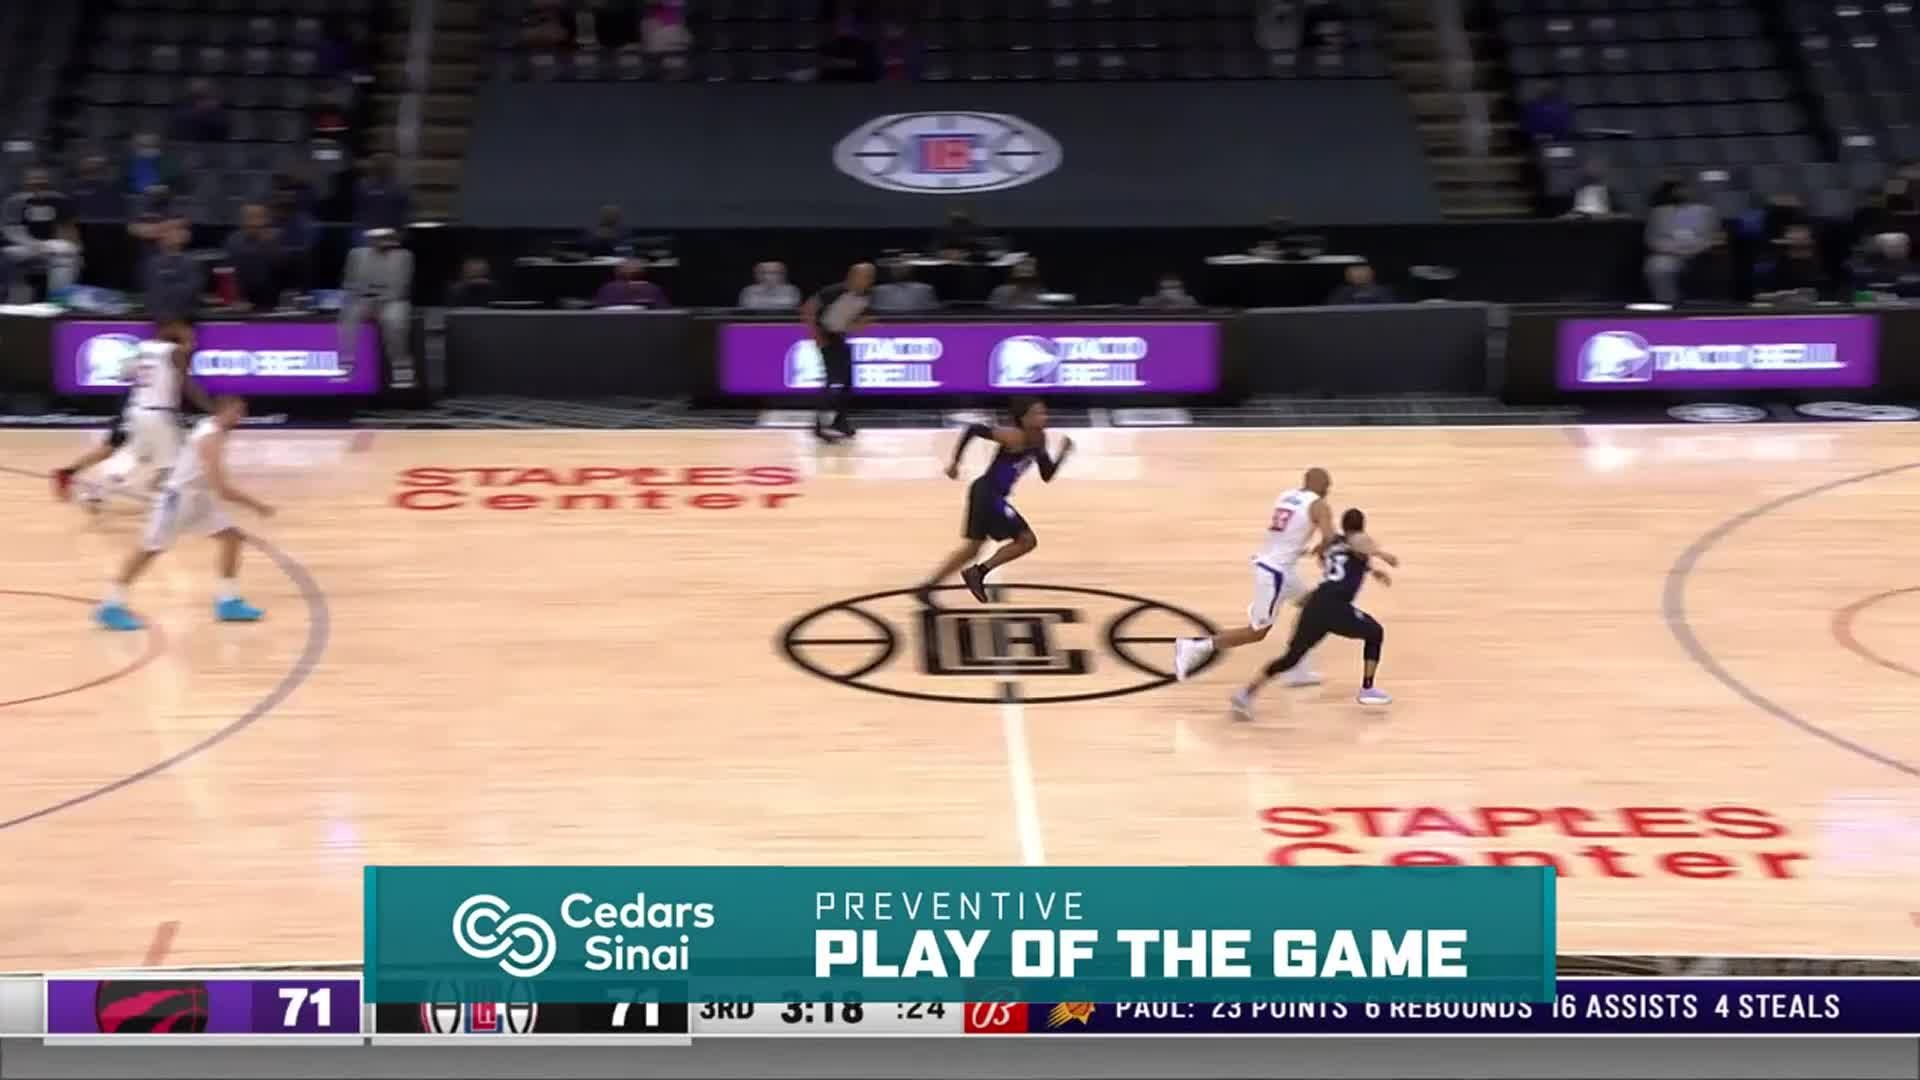 Cedars-Sinai Preventive Play of the Game | Clippers vs Raptors (5.4.21)